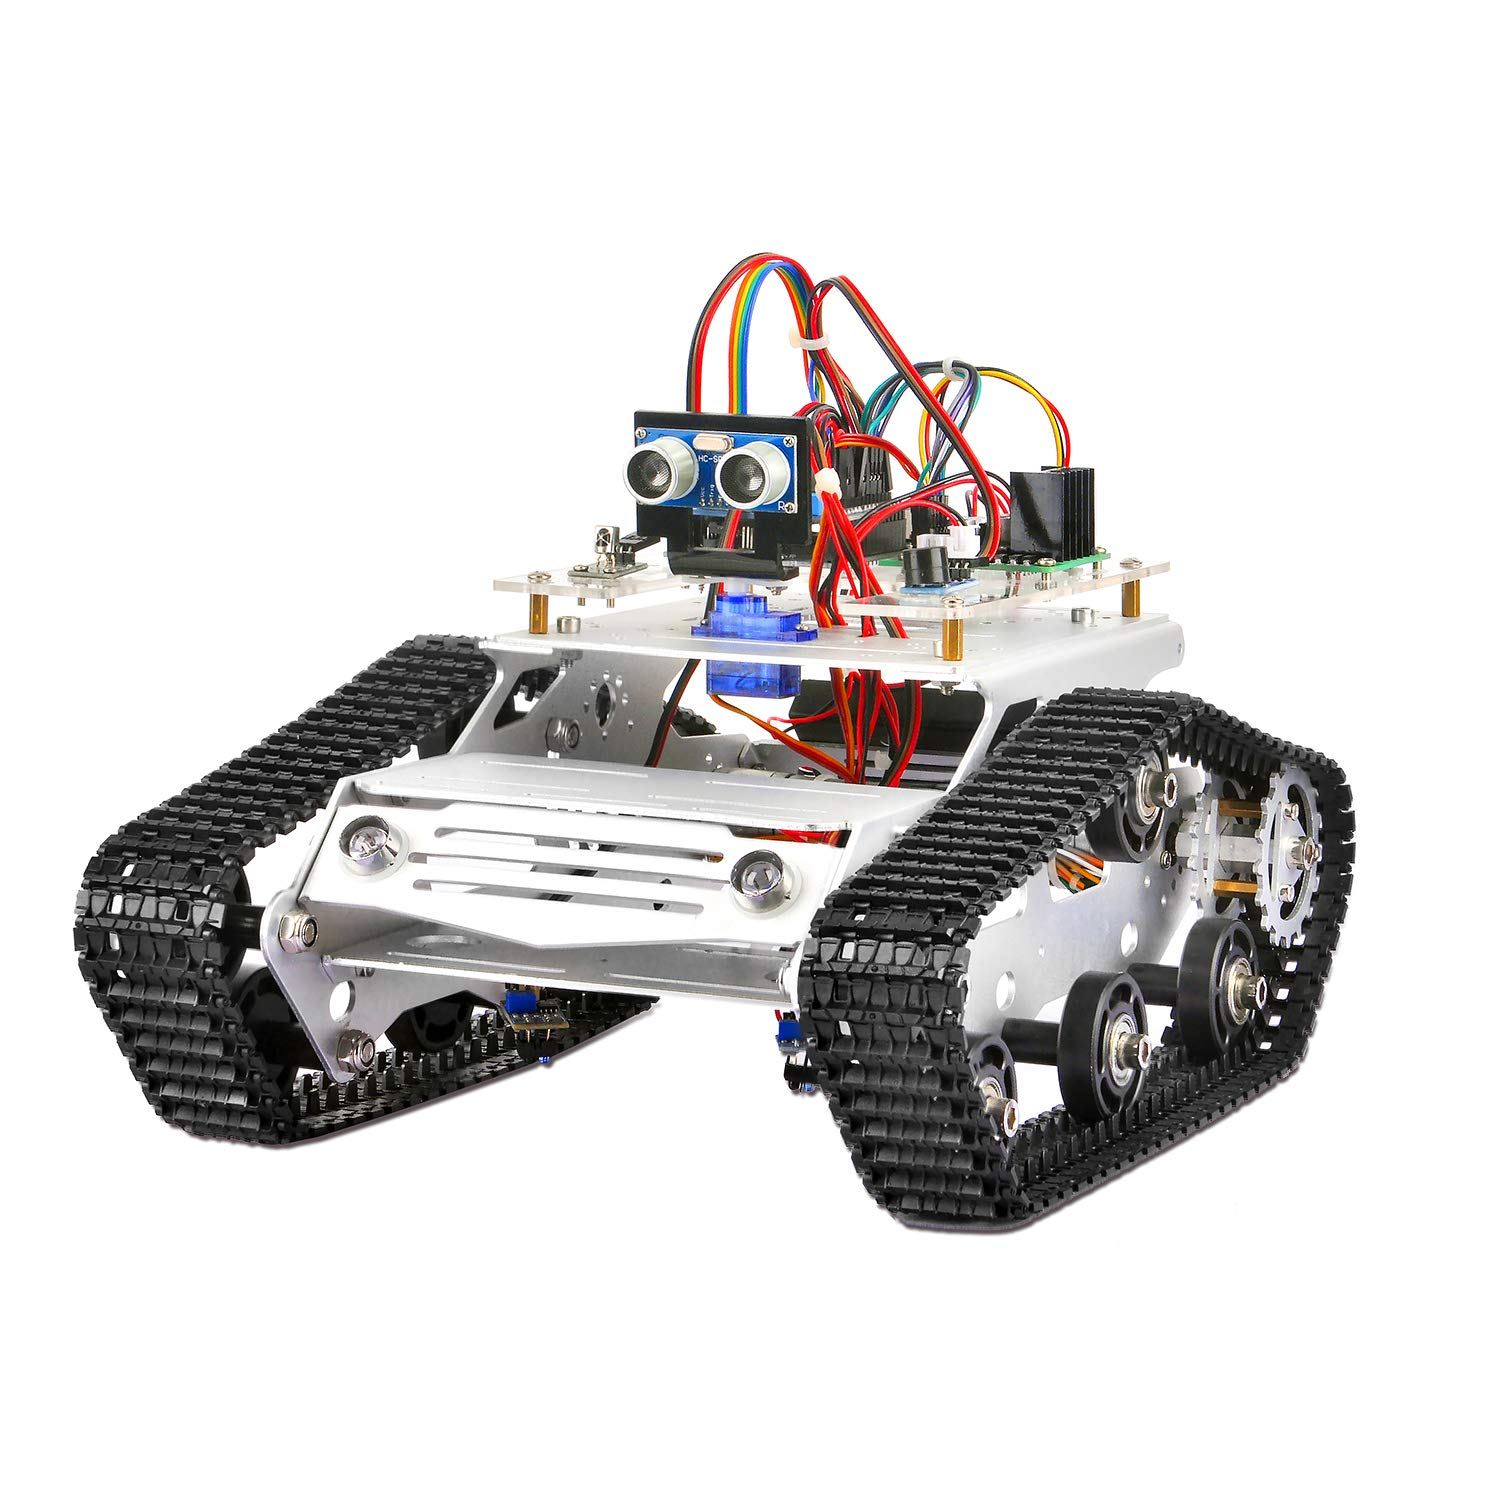 KOOKYE Robot Car Electronics Parts Kit with CD Tutorial for Arduino Tank Platform 2017010700 Tank Chassis NOT Included